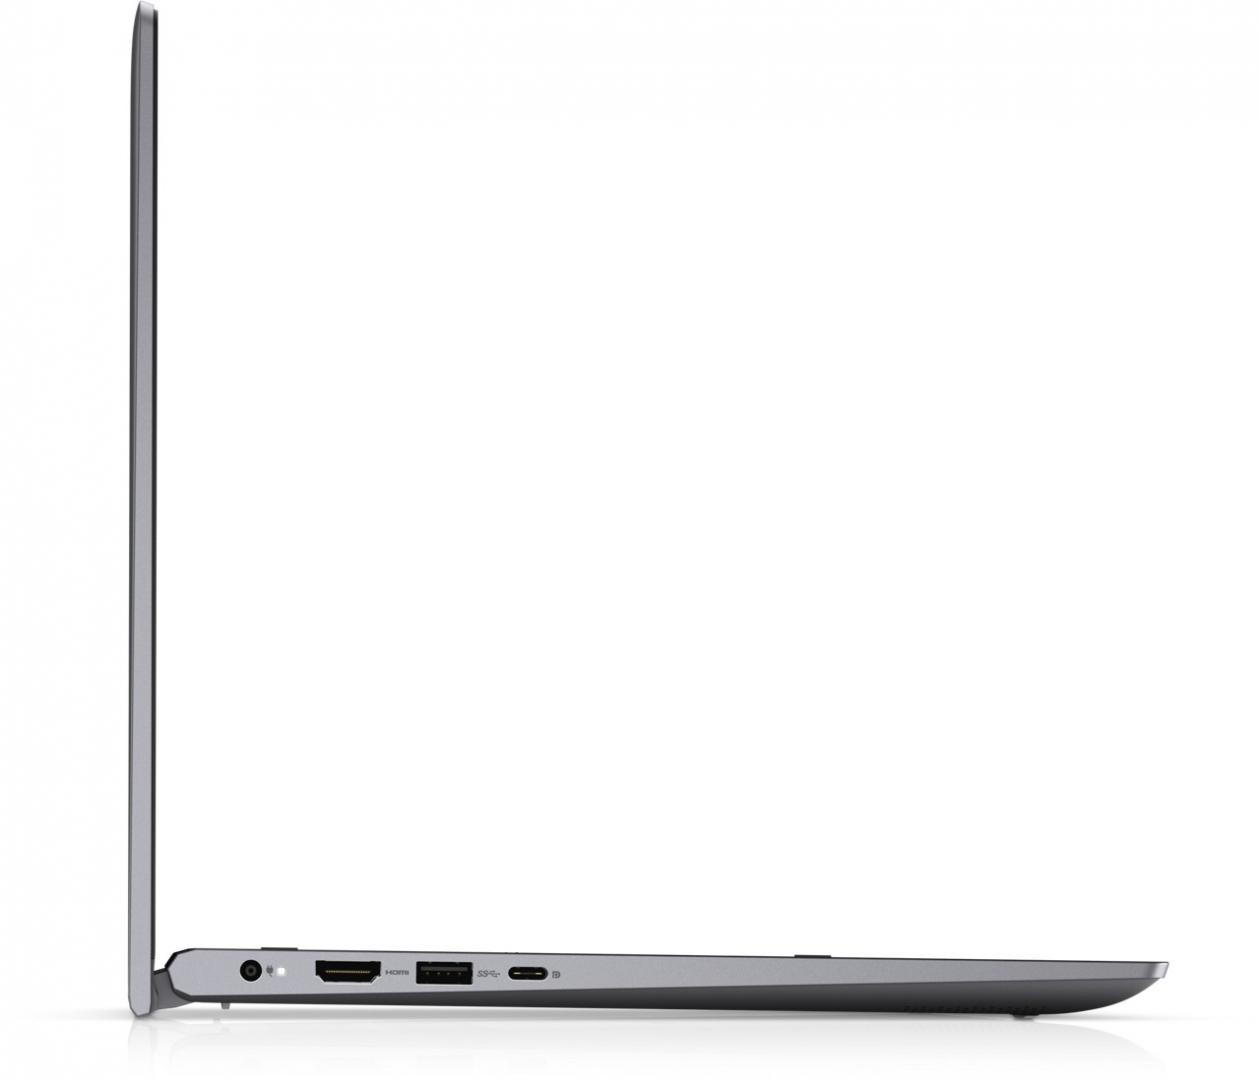 """Laptop Dell Inspiron 5406 2in1, 14.0"""" FHD, Touch, i5-1135G7, 8GB, 512GB SSD, Intel Iris Xe Graphics, W10 Home - imaginea 7"""